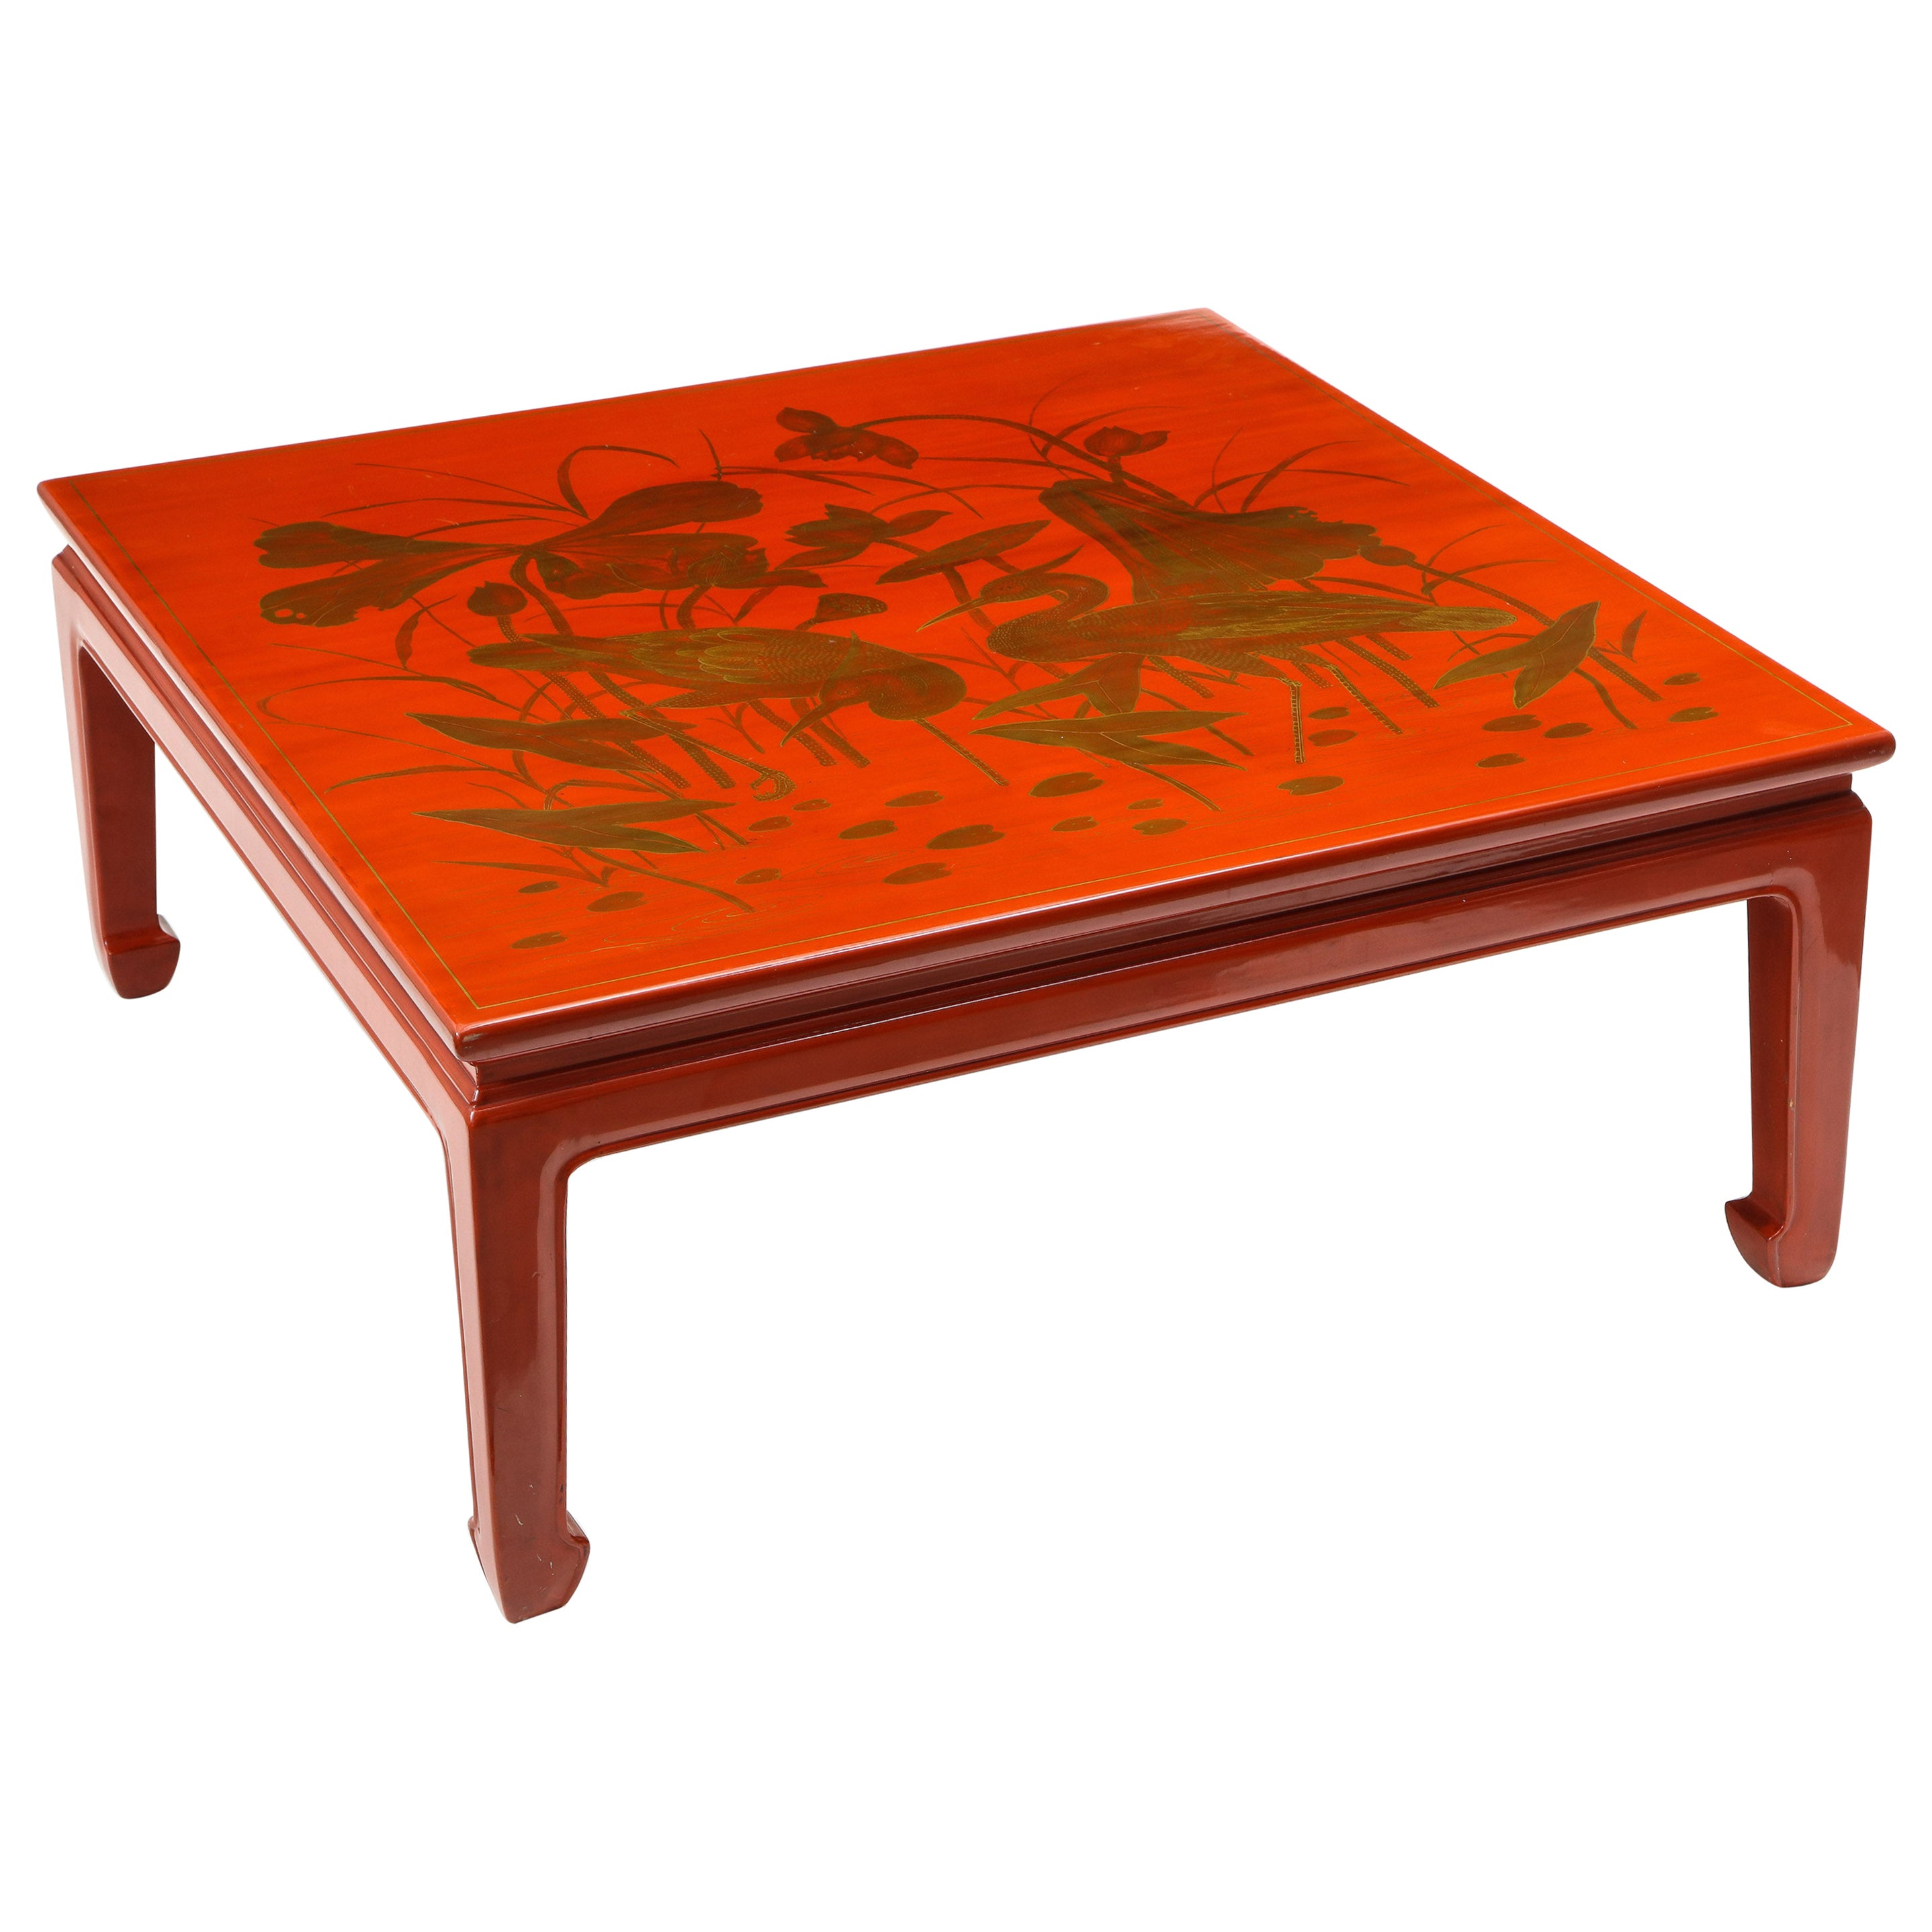 Red Lacquer and Gilt Chinoiserie Square Coffee Table